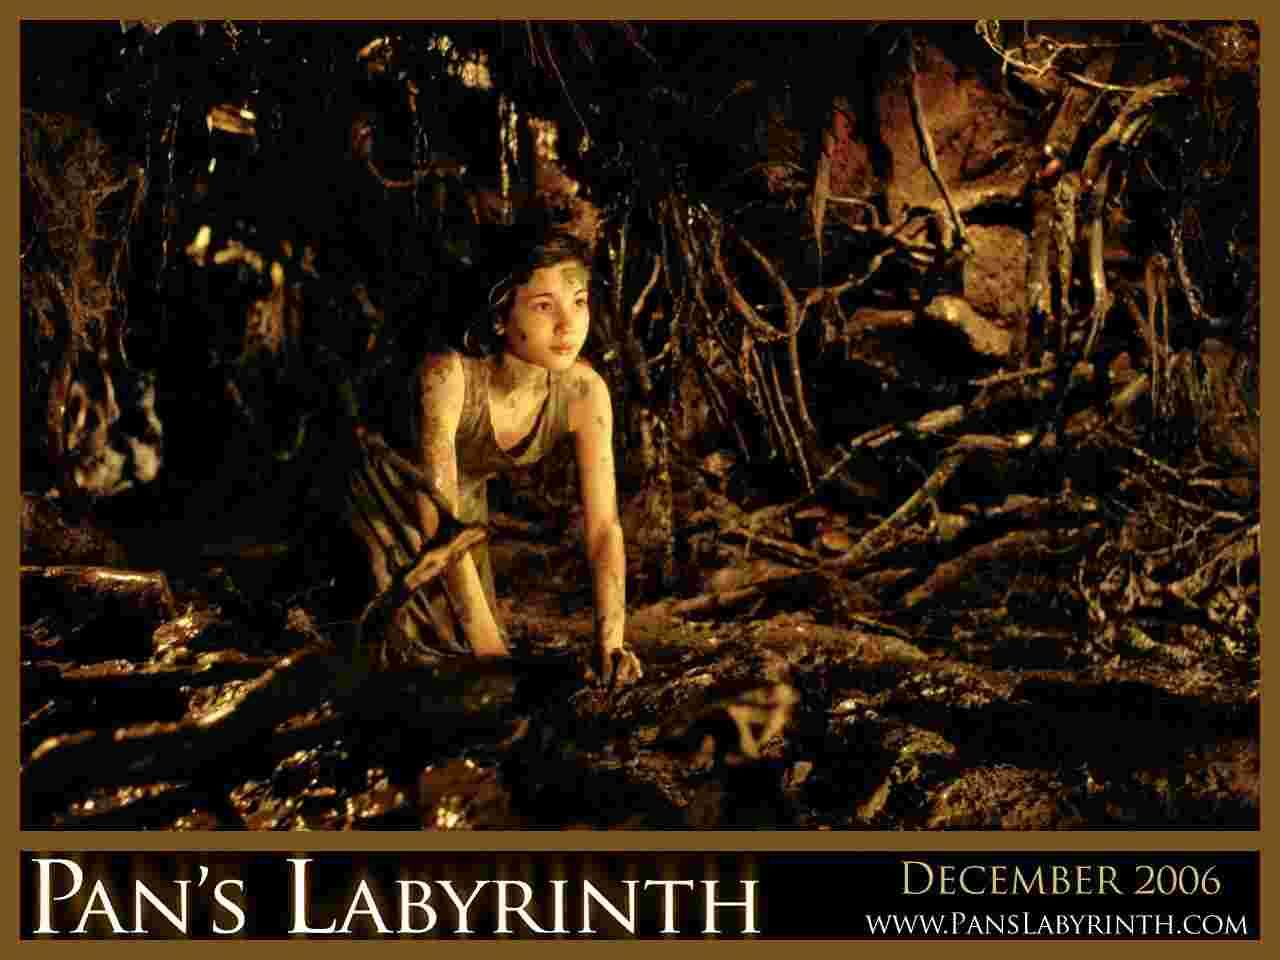 Pans Labyrinth images Pans Labyrinth HD wallpaper and background